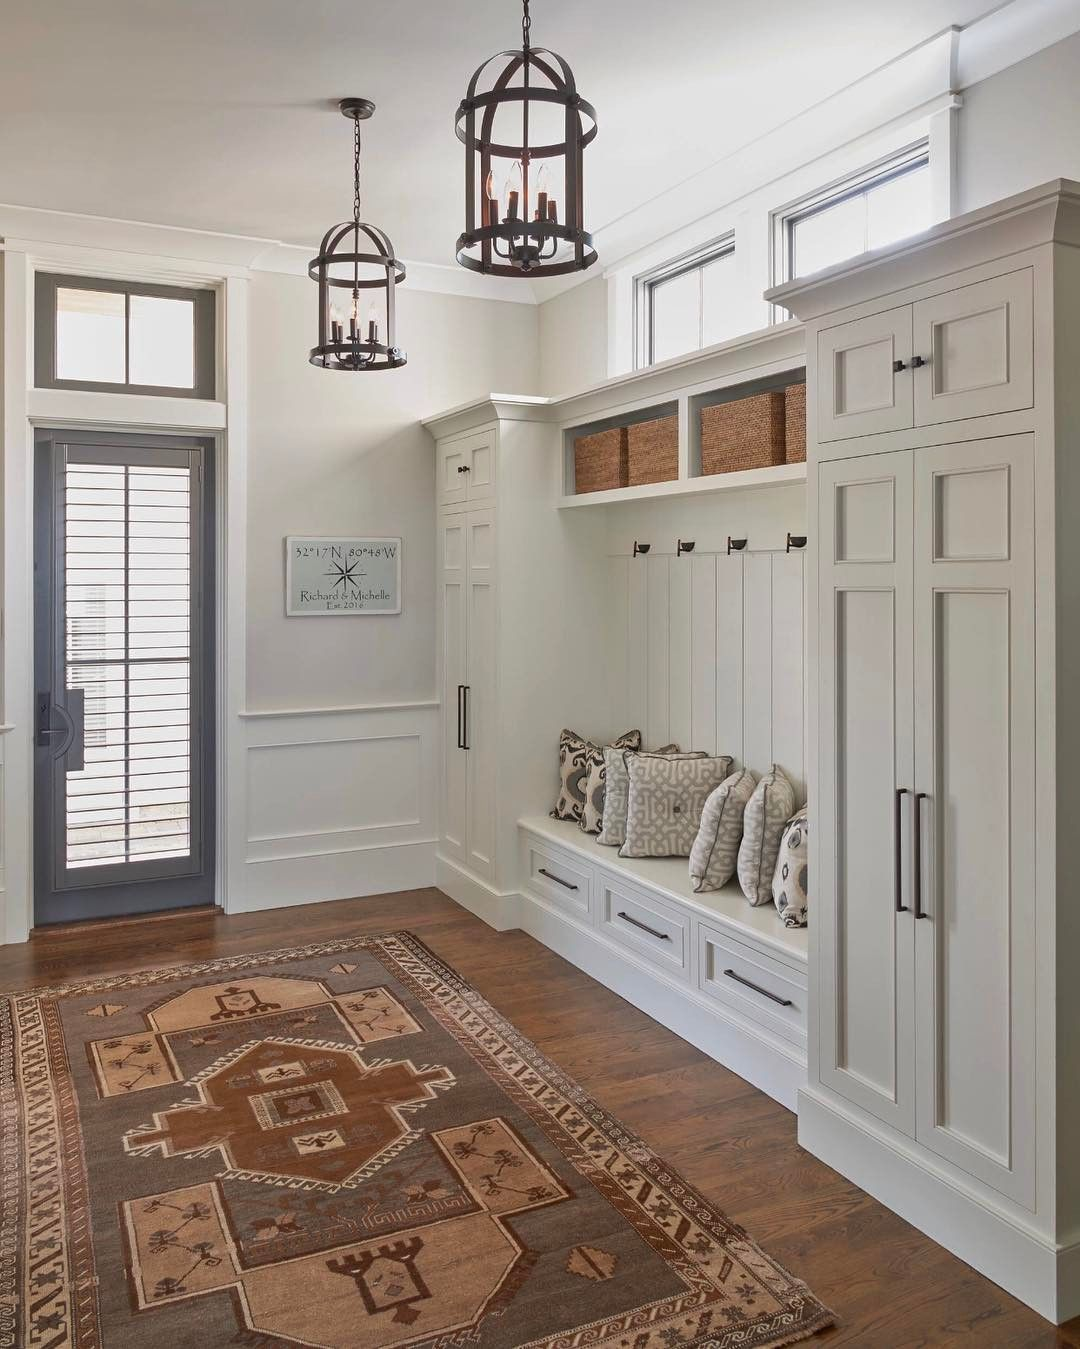 This entryway only with cubbies below bench for shoe for Classic house tutorial